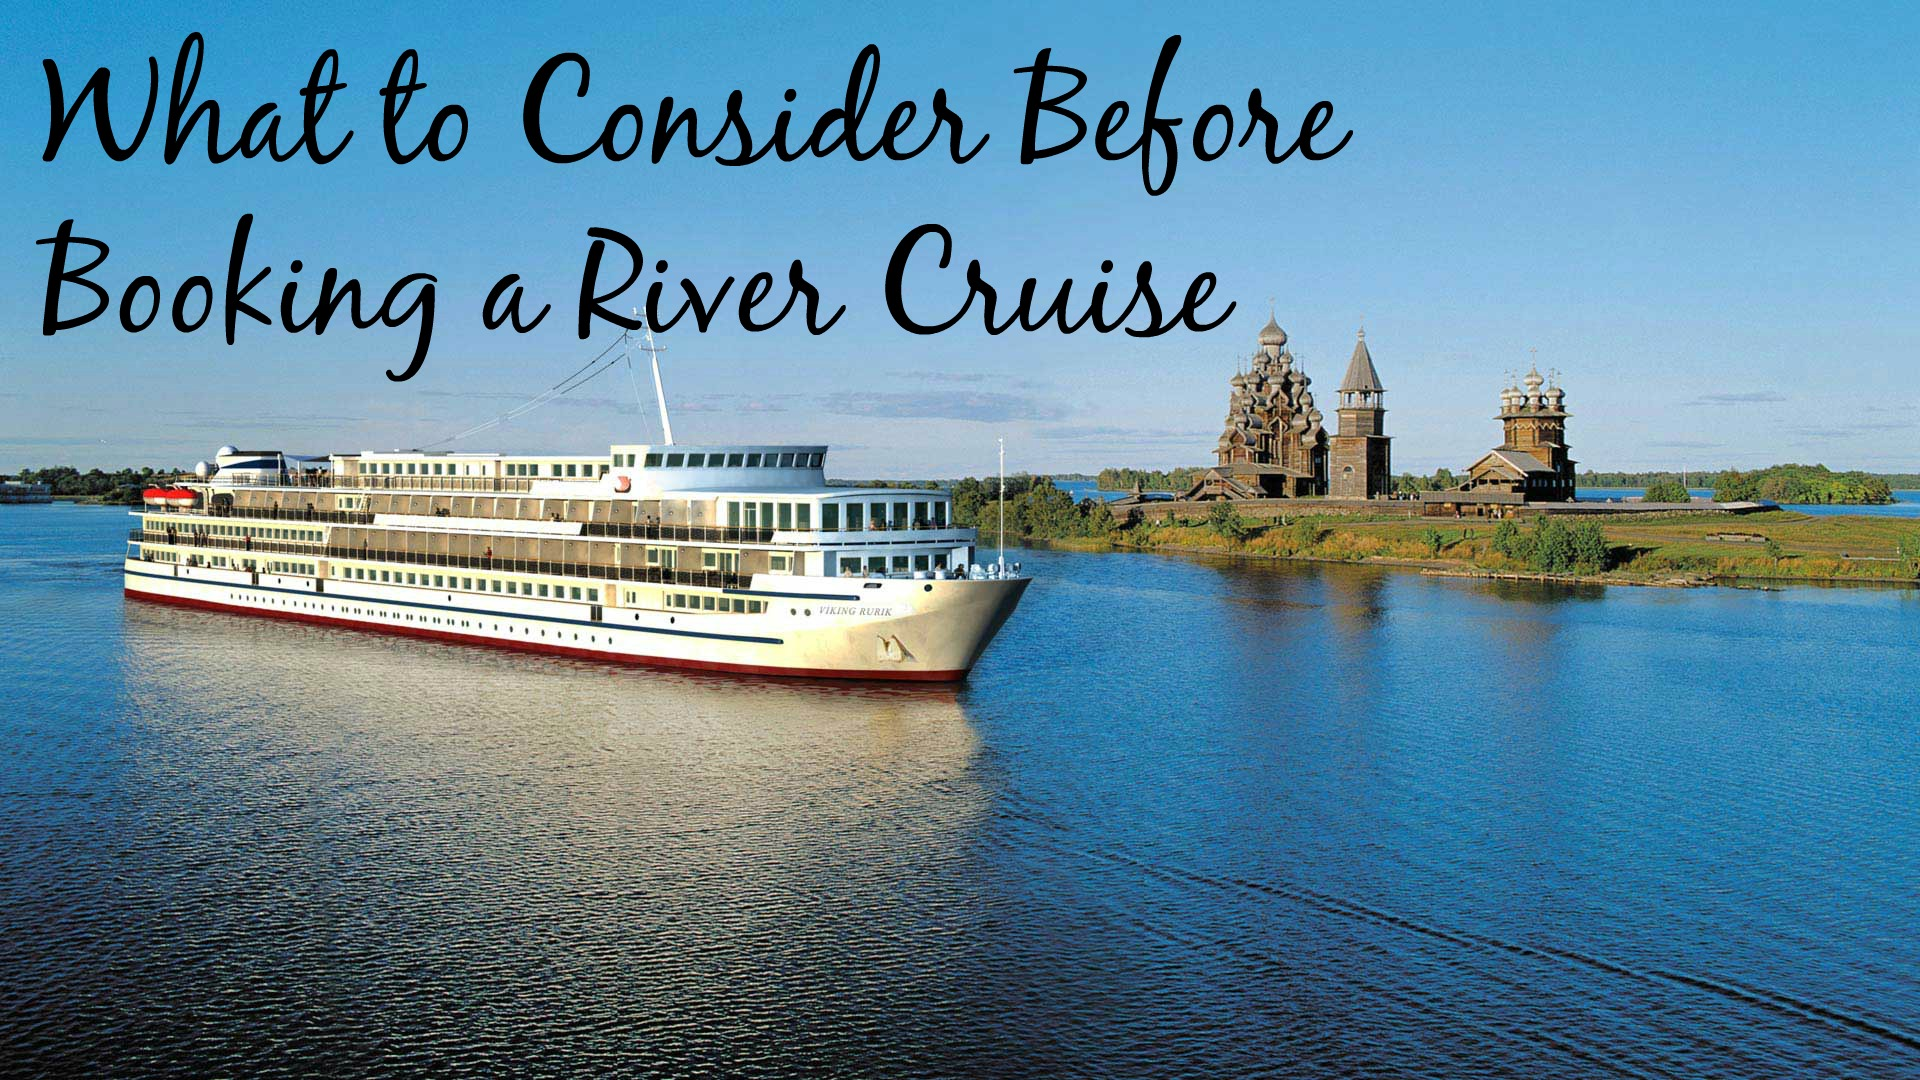 viking-river-cruise-review-1